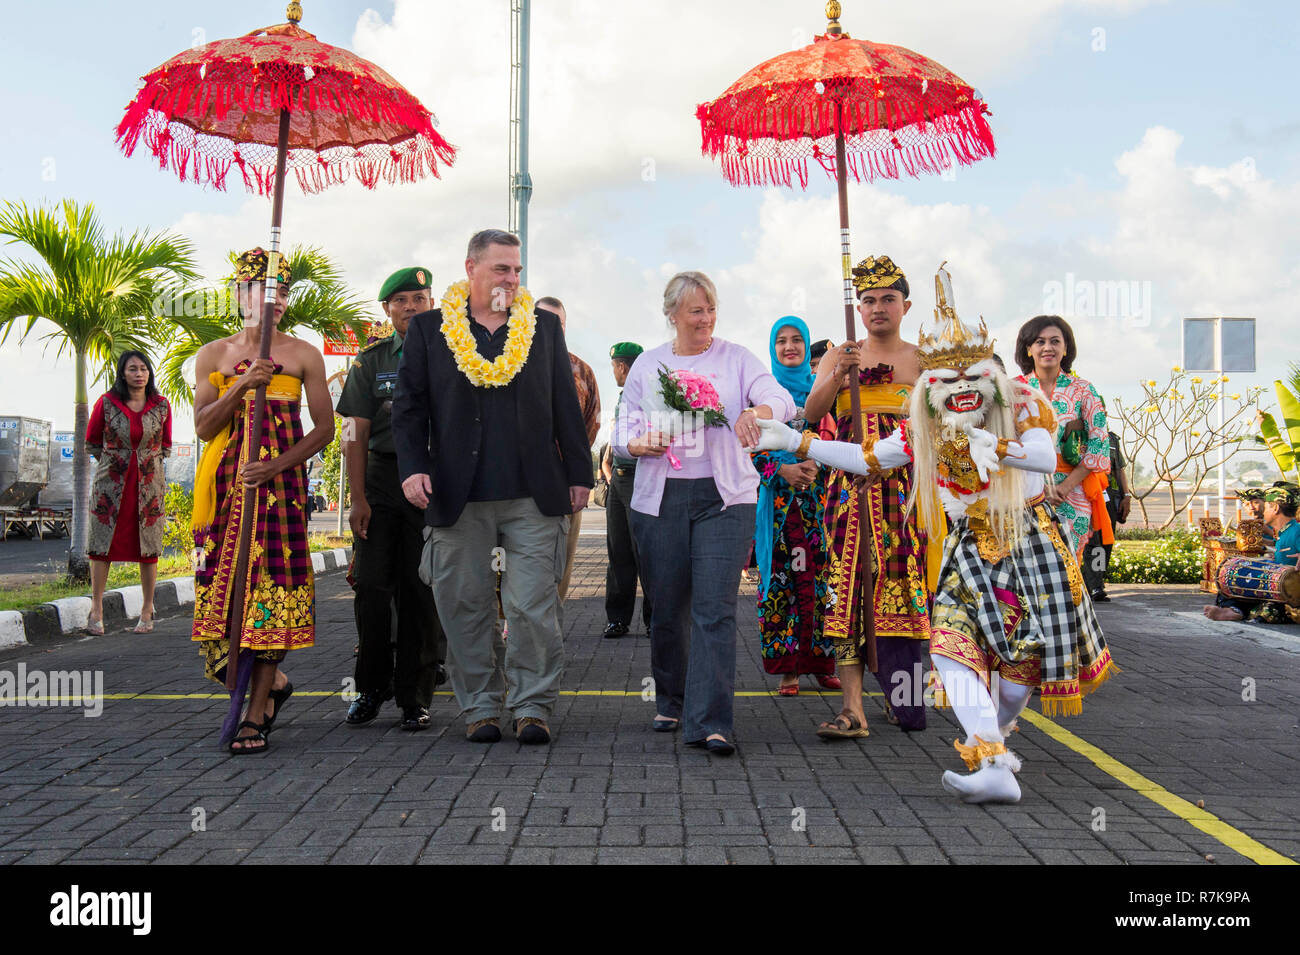 U.S. Army Chief of Staff Gen. Mark Milley, left, and his wife Hollyanne are welcomed by Balinese performers on arrival to Gusti Ngurah Rai International Airport September 13, 2015 in Bali, Indonesia. Milley was chosen by President Donald Trump on December 8, 2018 to be the next Chairman of the Joint Chiefs. - Stock Image